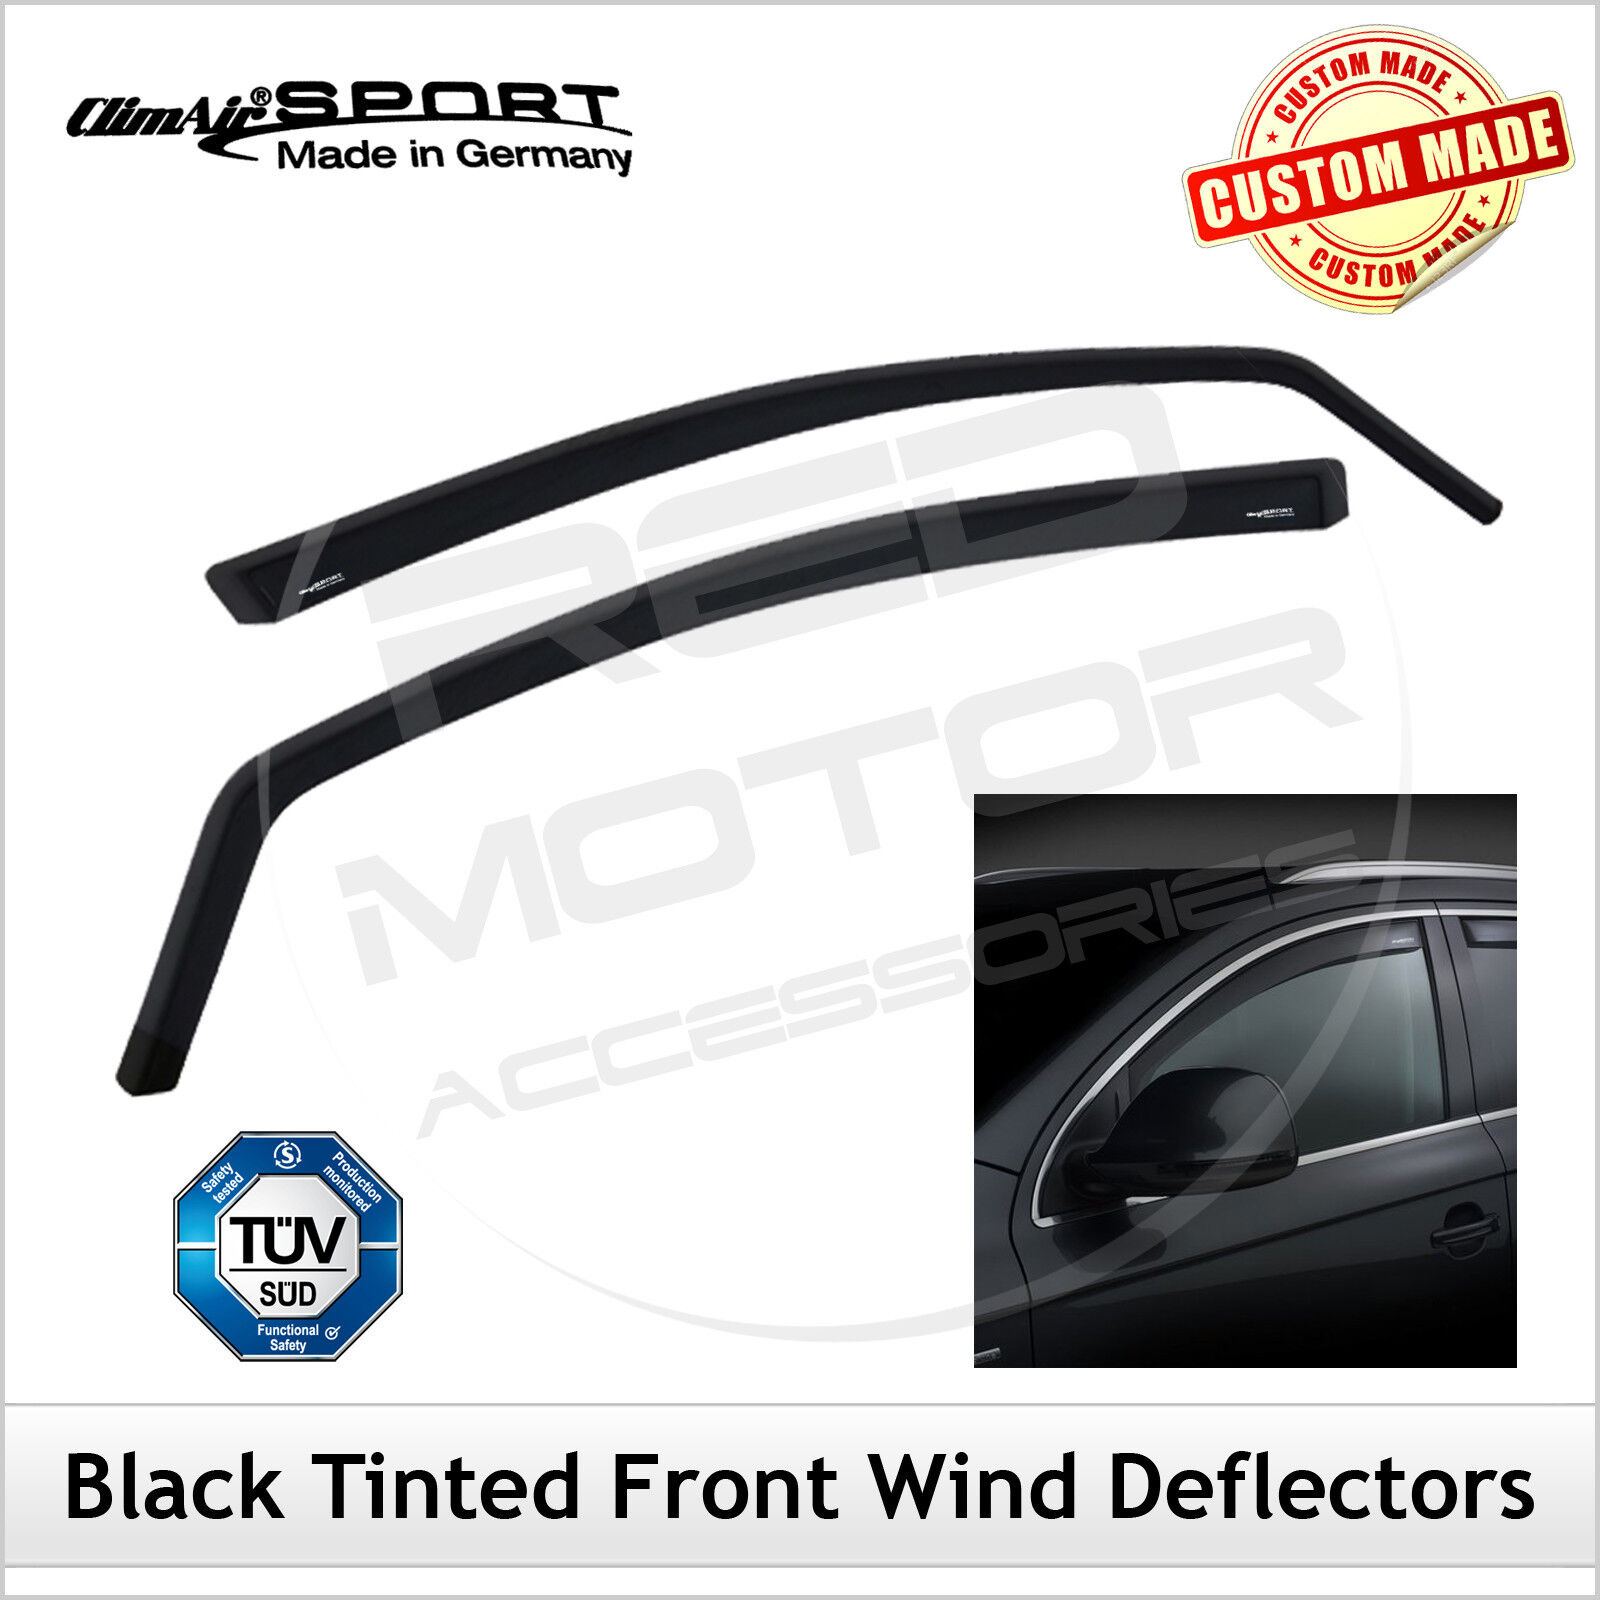 Climair Black Tint Truck Wind Deflectors Daf Xf 105 2006 2012 Front Vehicle Parts Accessories Lorry Truck Parts